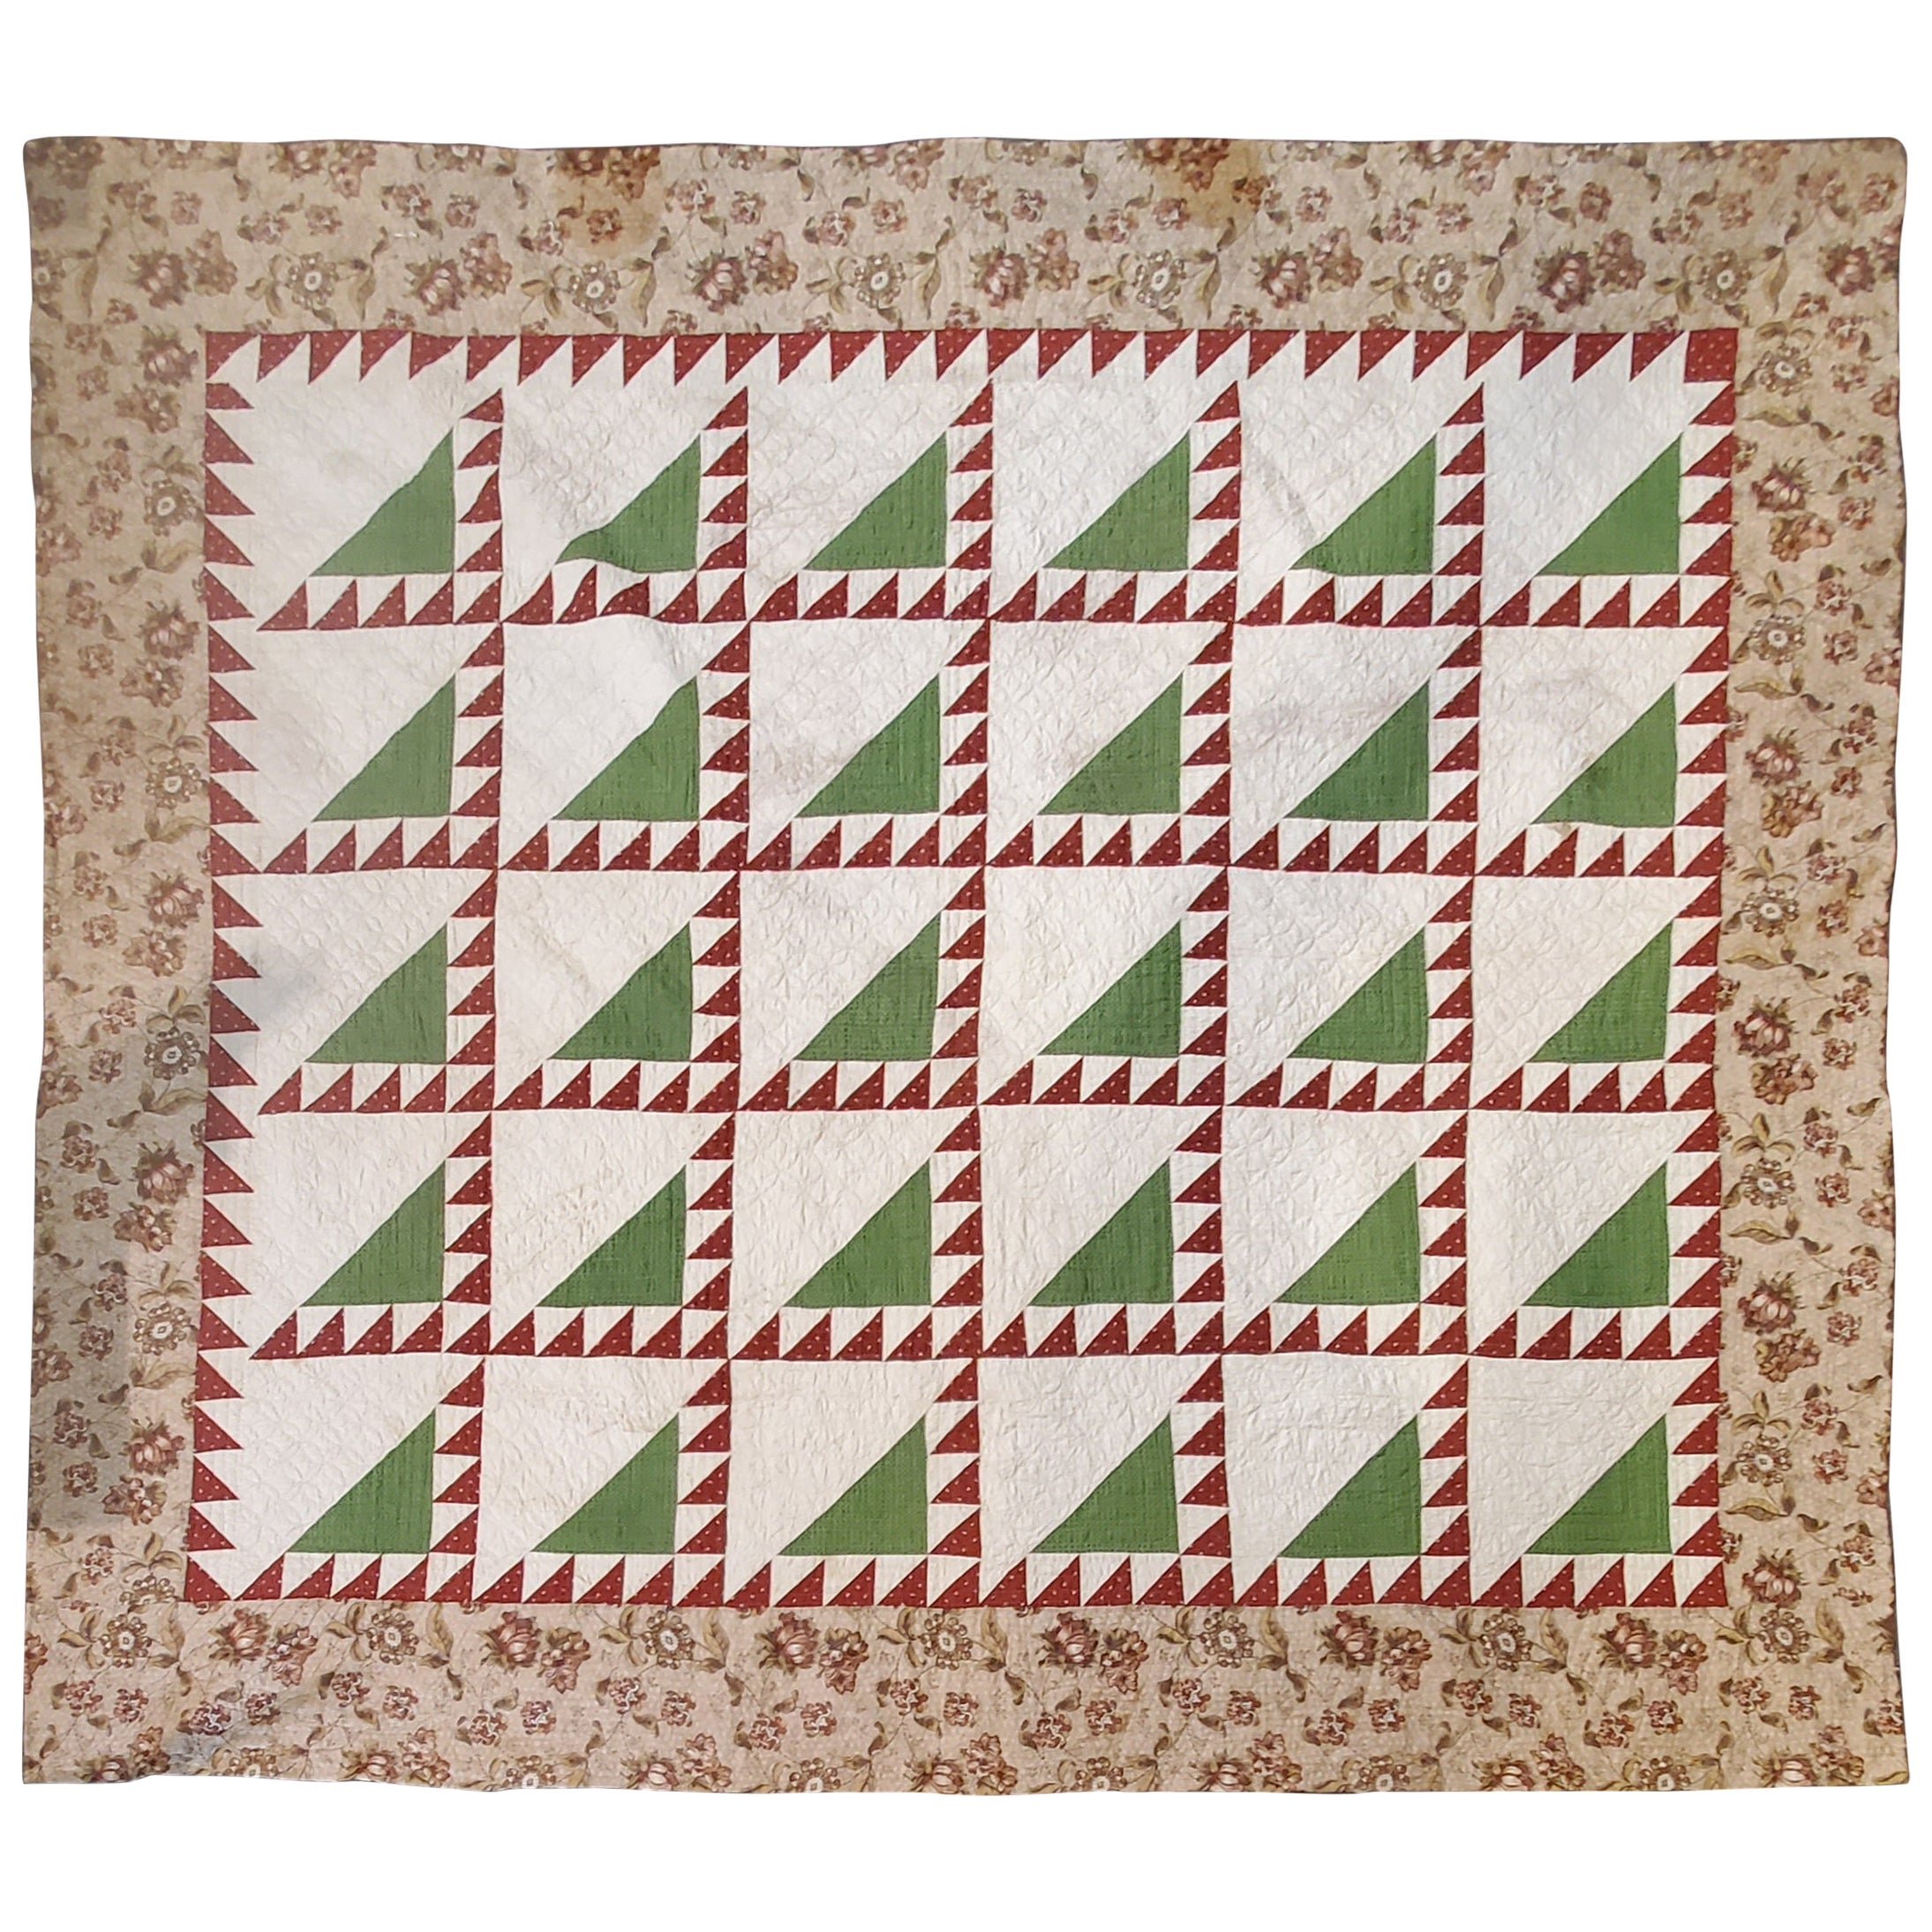 19th Century Lady of the Lake Quilt with Chintz Border